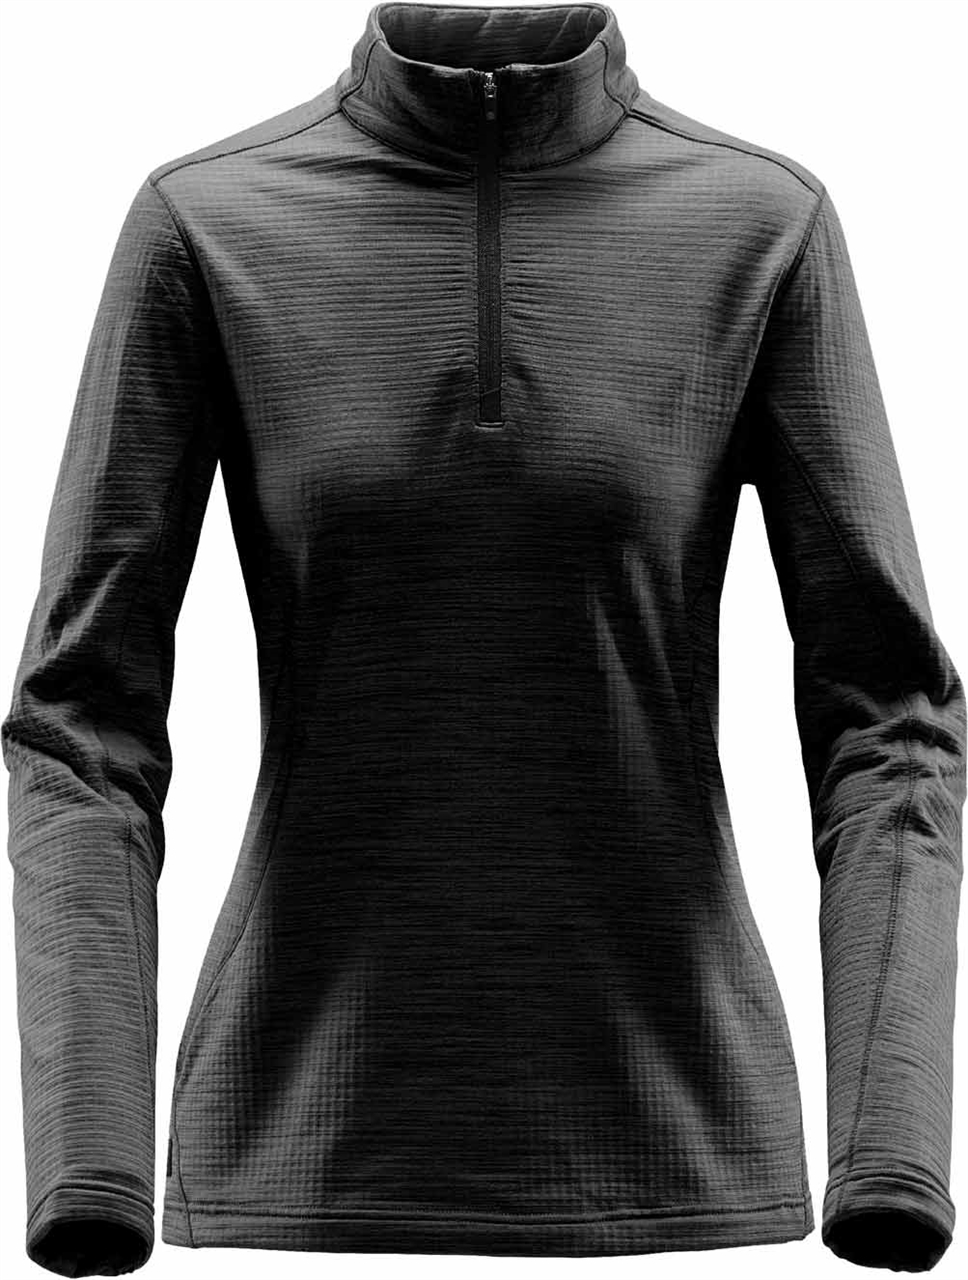 Picture of STORMTECH Women's Base Thermal 1/4 Zip